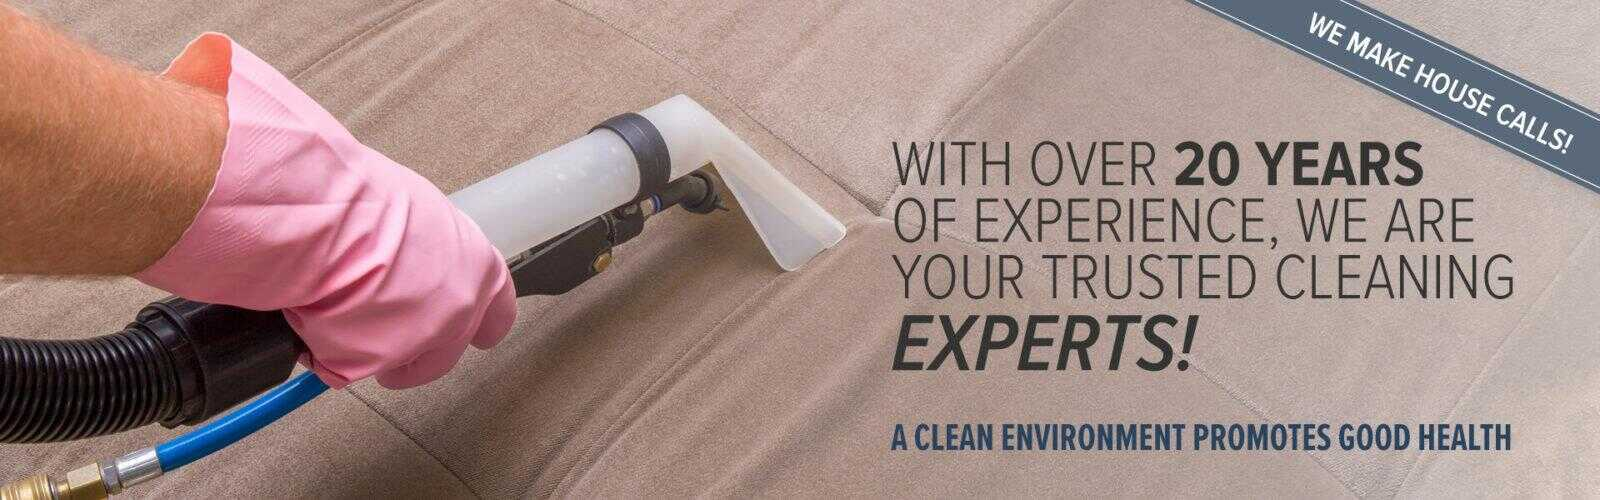 tims carpet cleaning experience